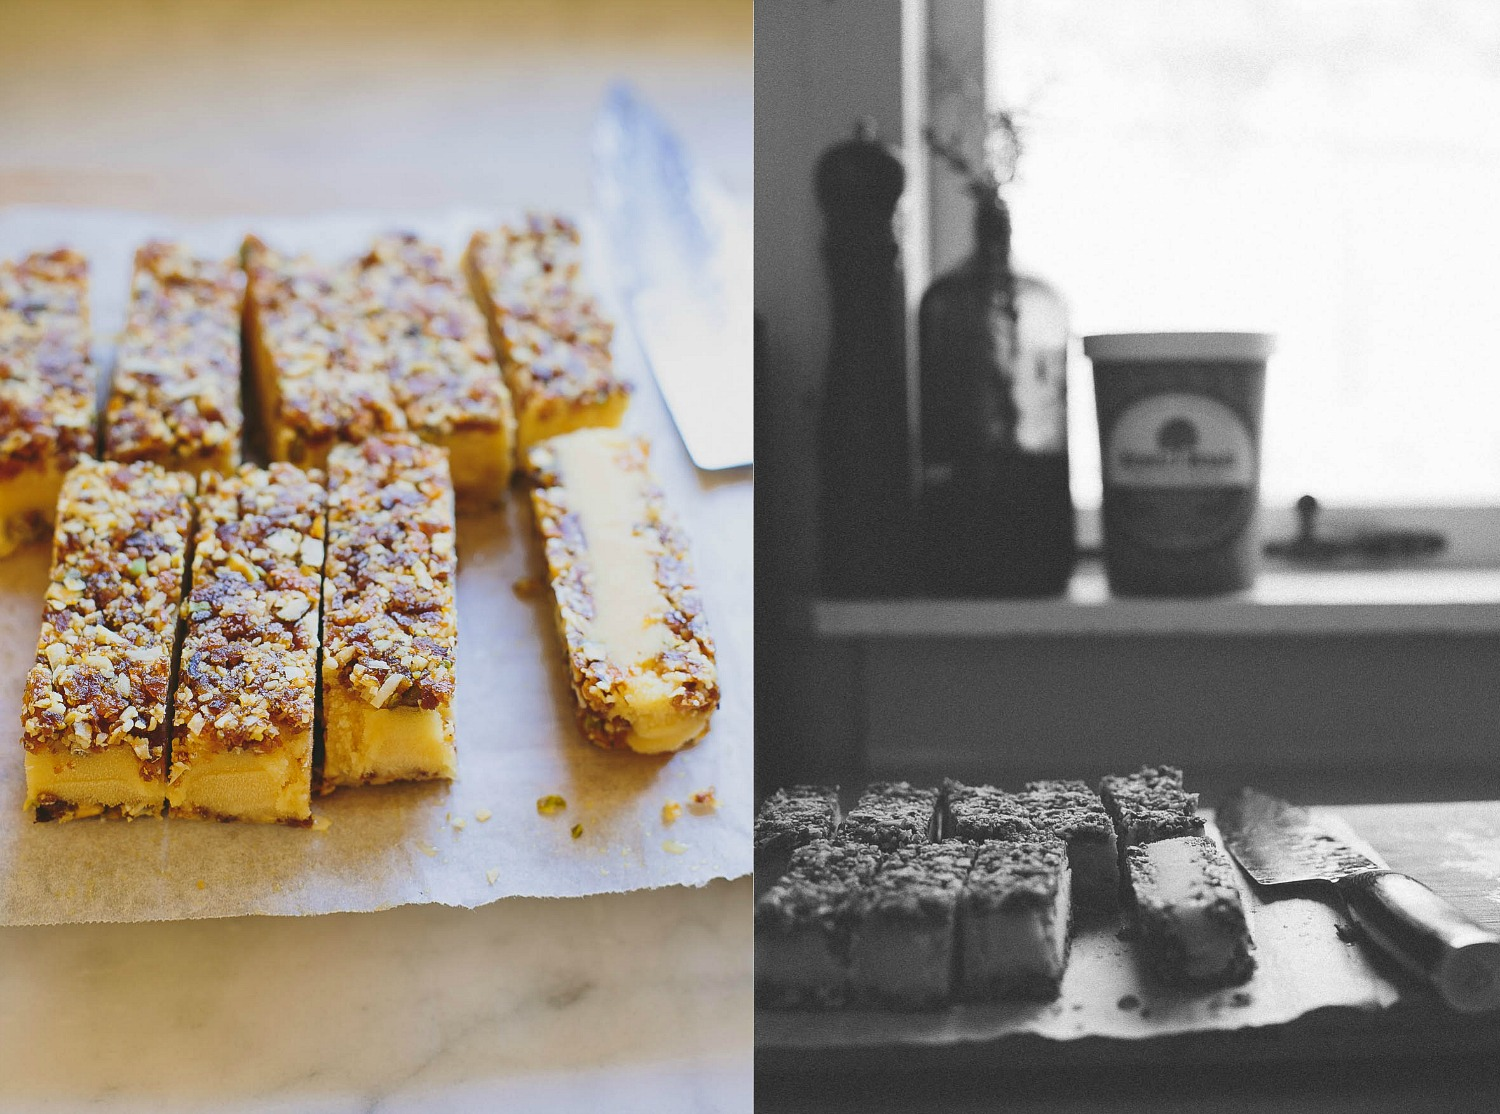 Apricot, pistachio + passionfruit ice cream bars | My Darling Lemon Thyme